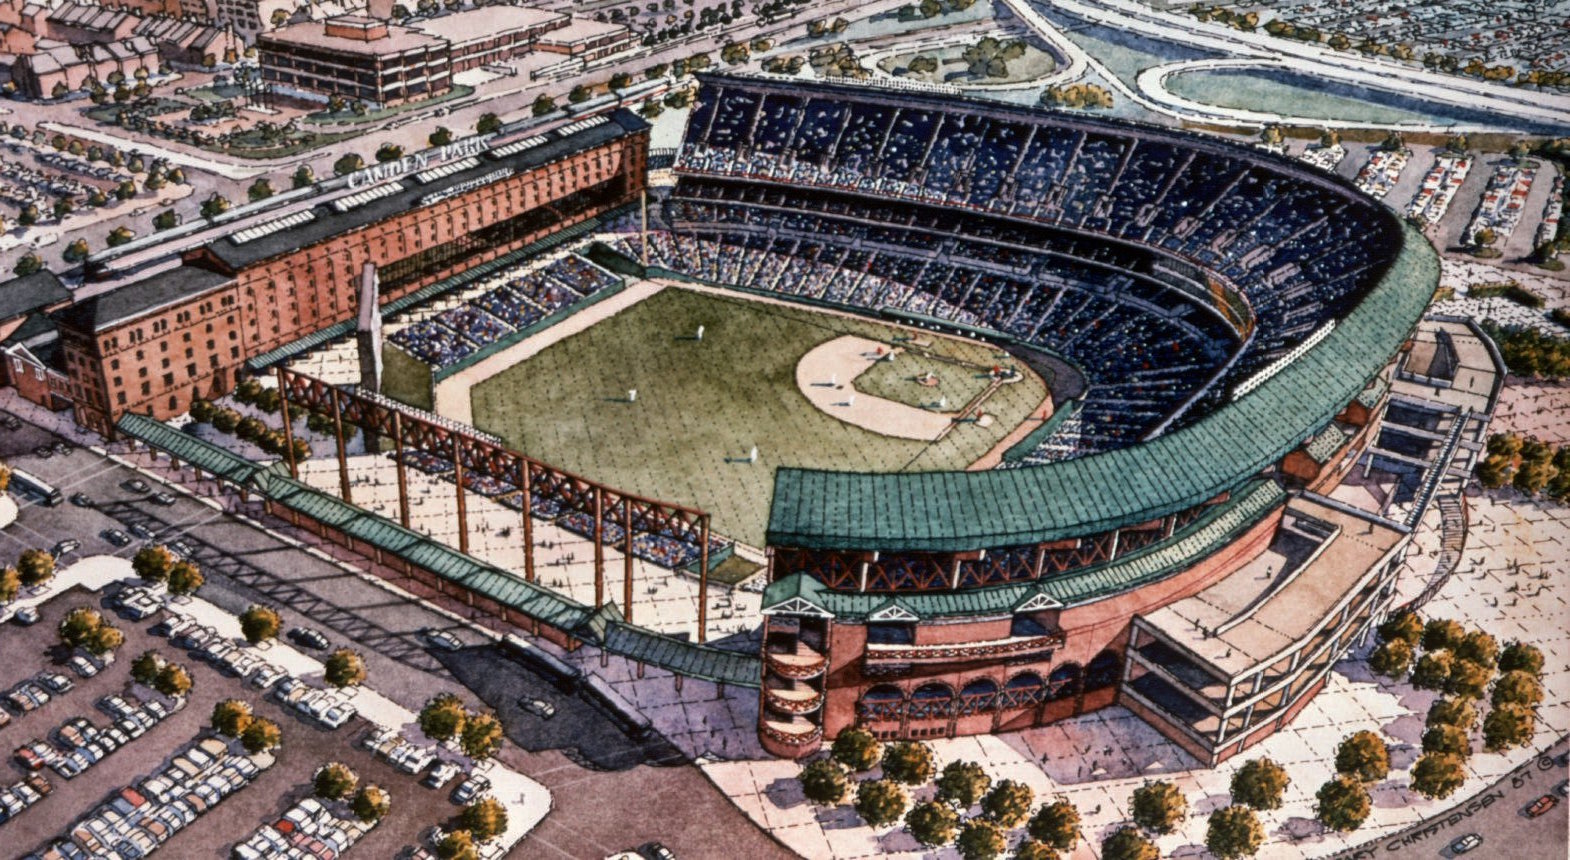 bal-oriole-park-at-camden-yards-renderin